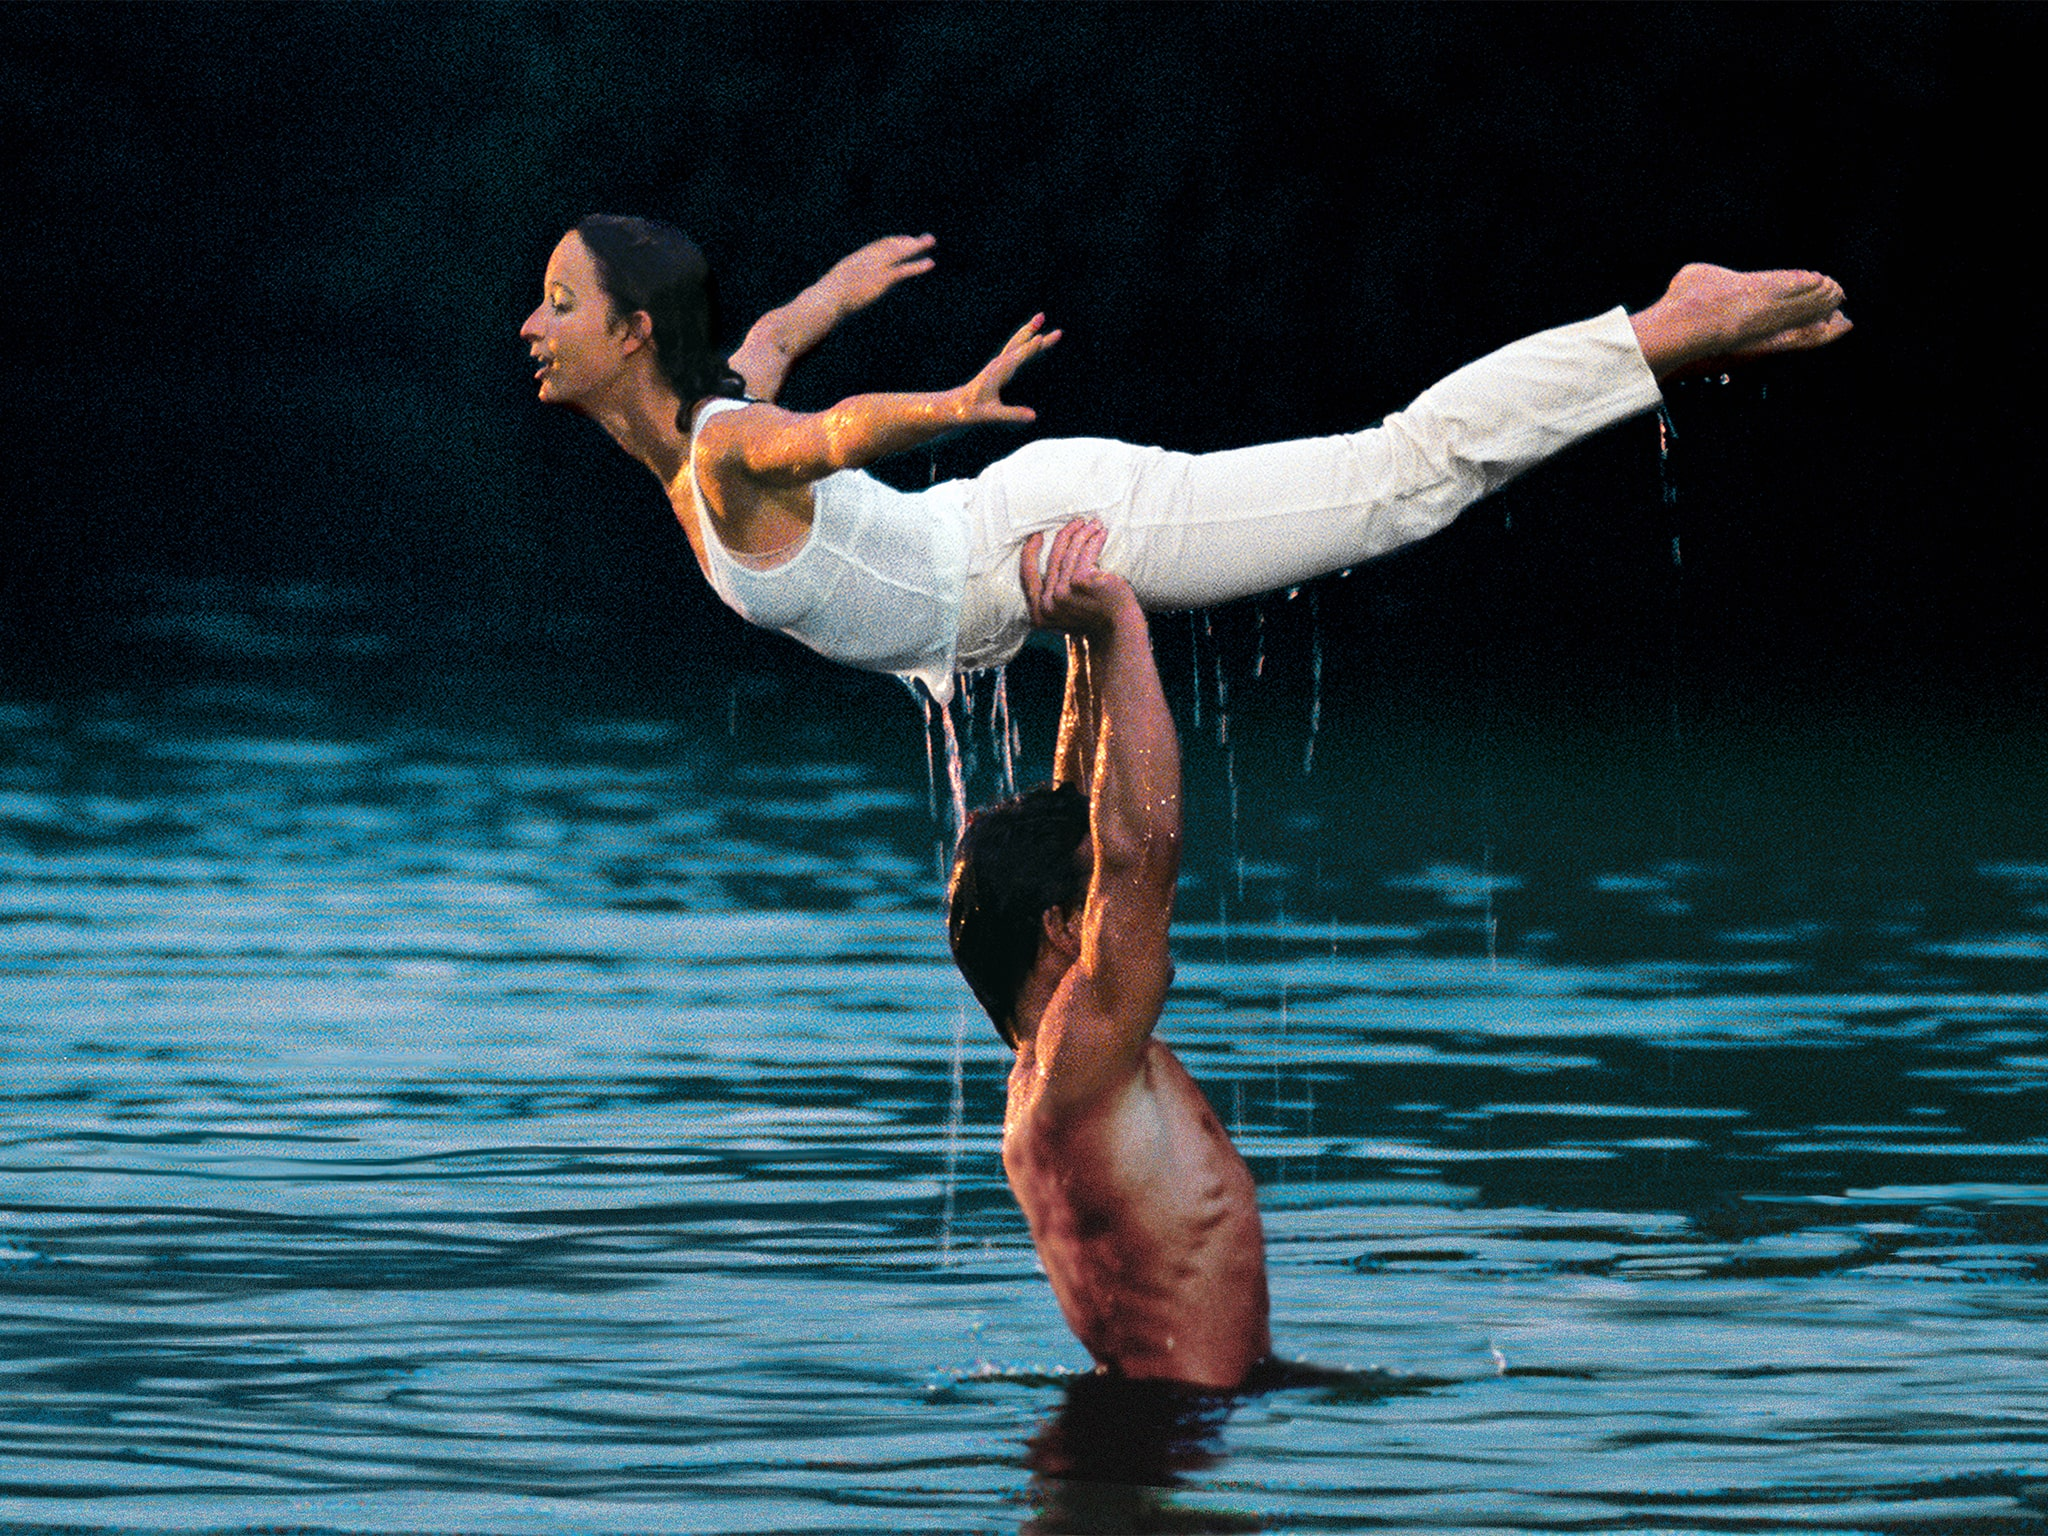 dirty-dancing-image-4-min